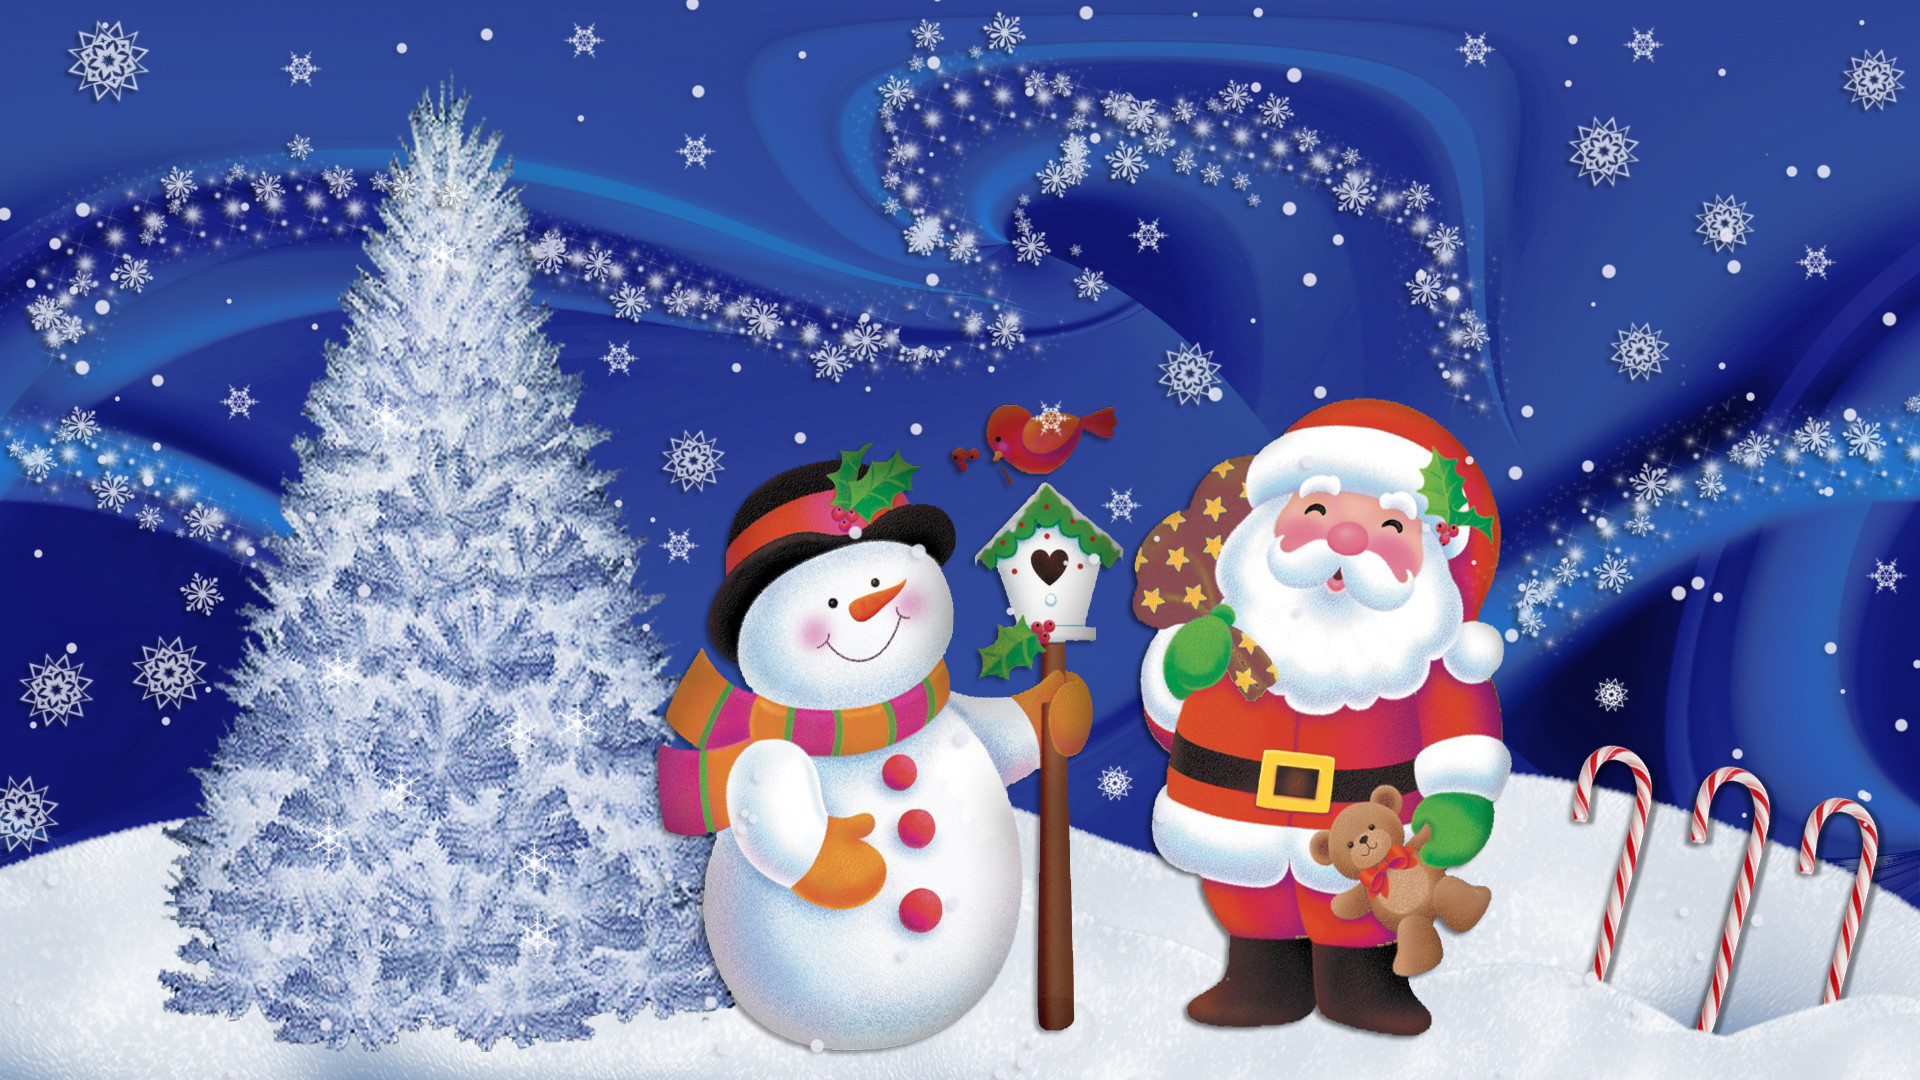 Res: 1920x1080, Funny Santa Claus and snowman on Christmas